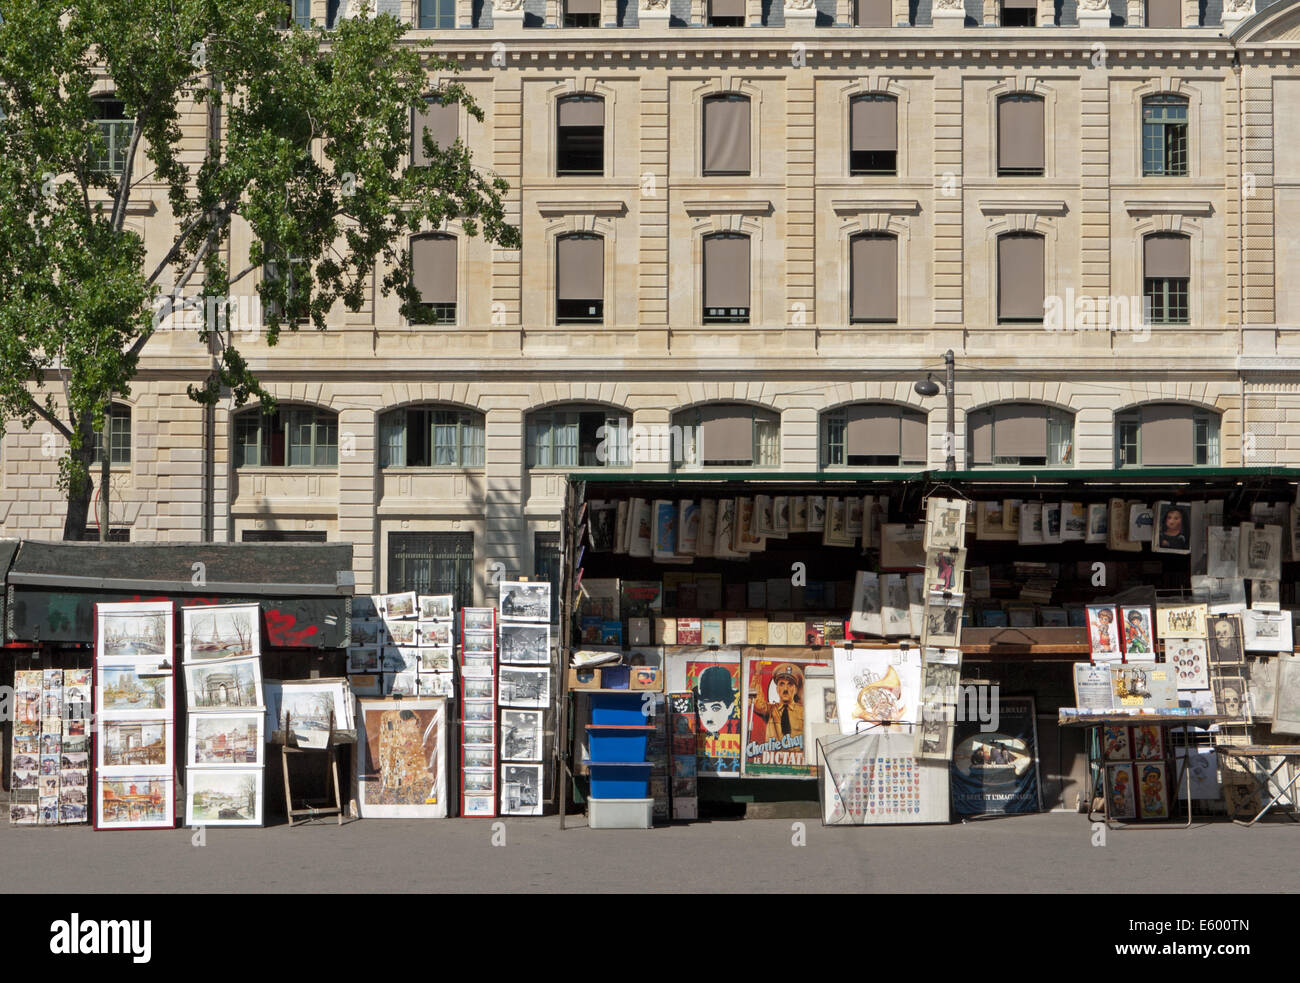 Bookseller on the bank of the Seine, Paris, France - Stock Image